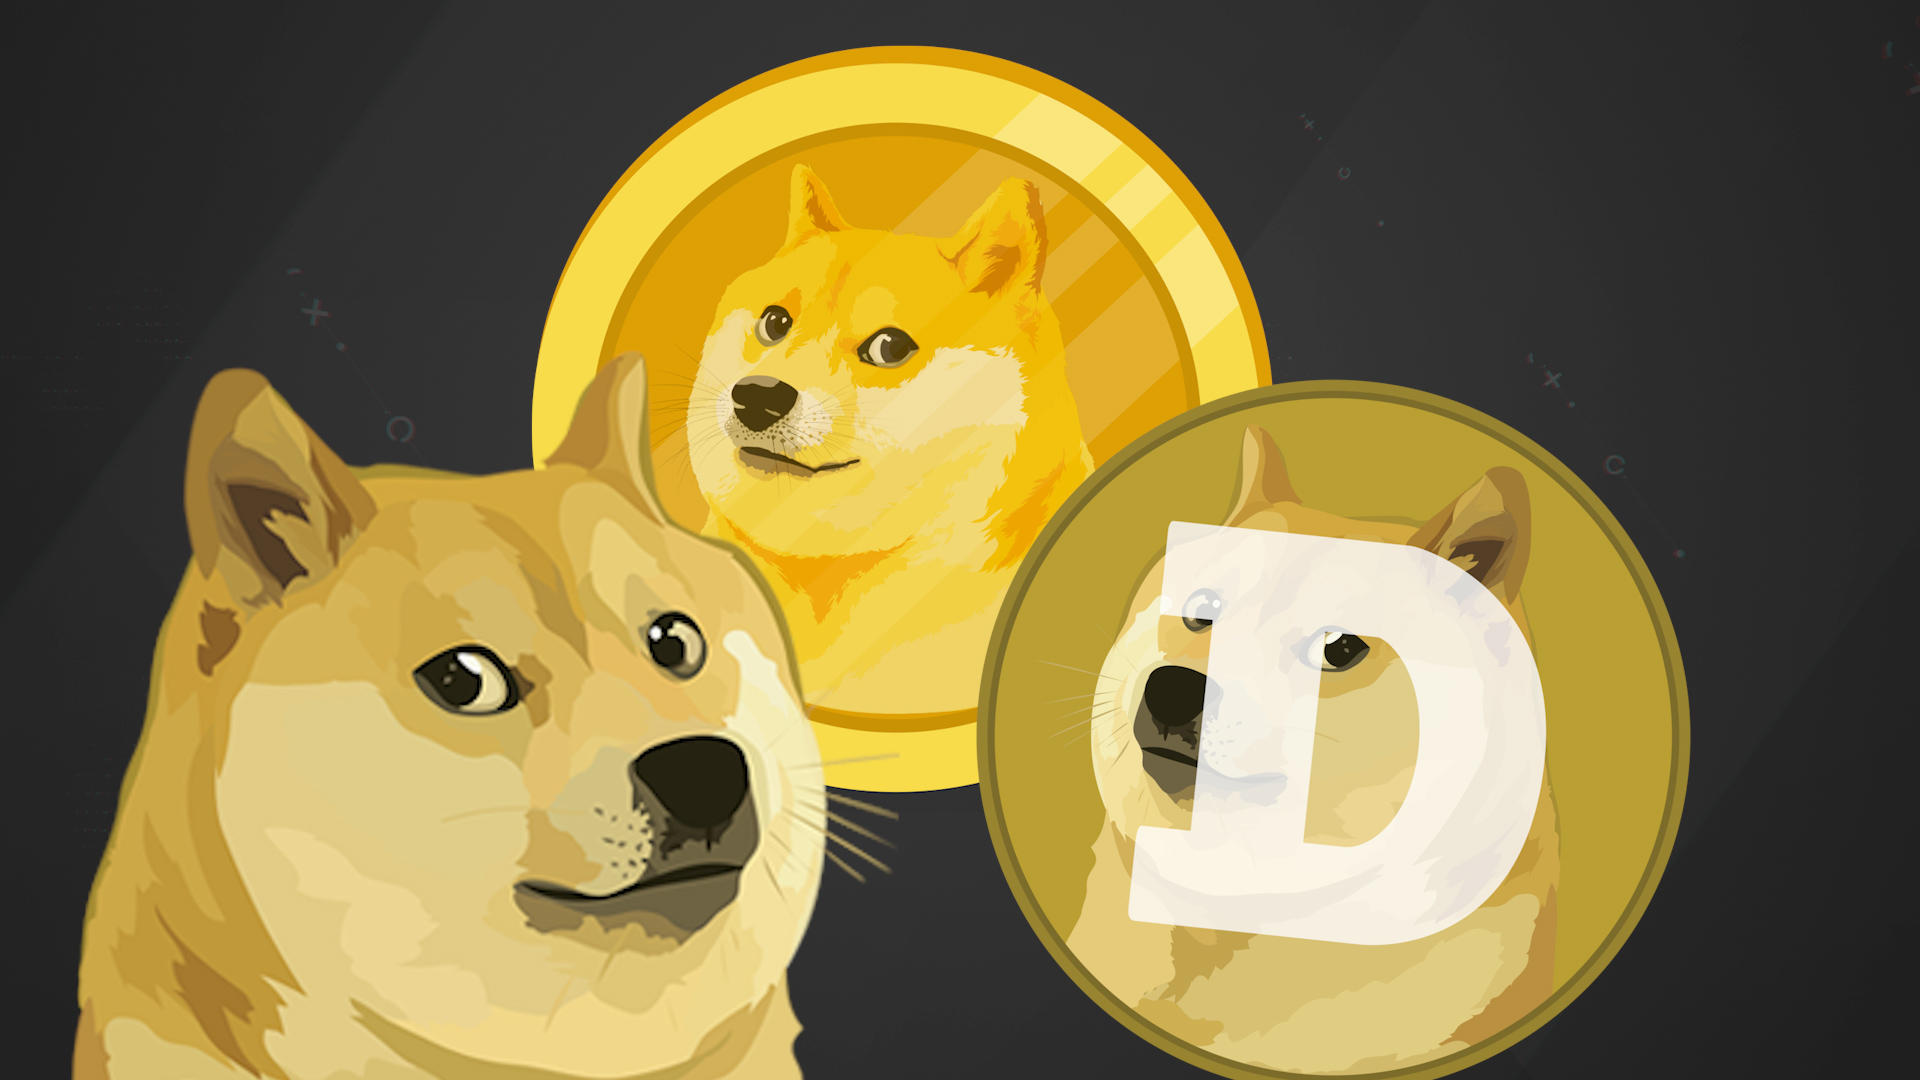 <p>DogeCoin hit 60 cents: What's behind the latest surge thumbnail